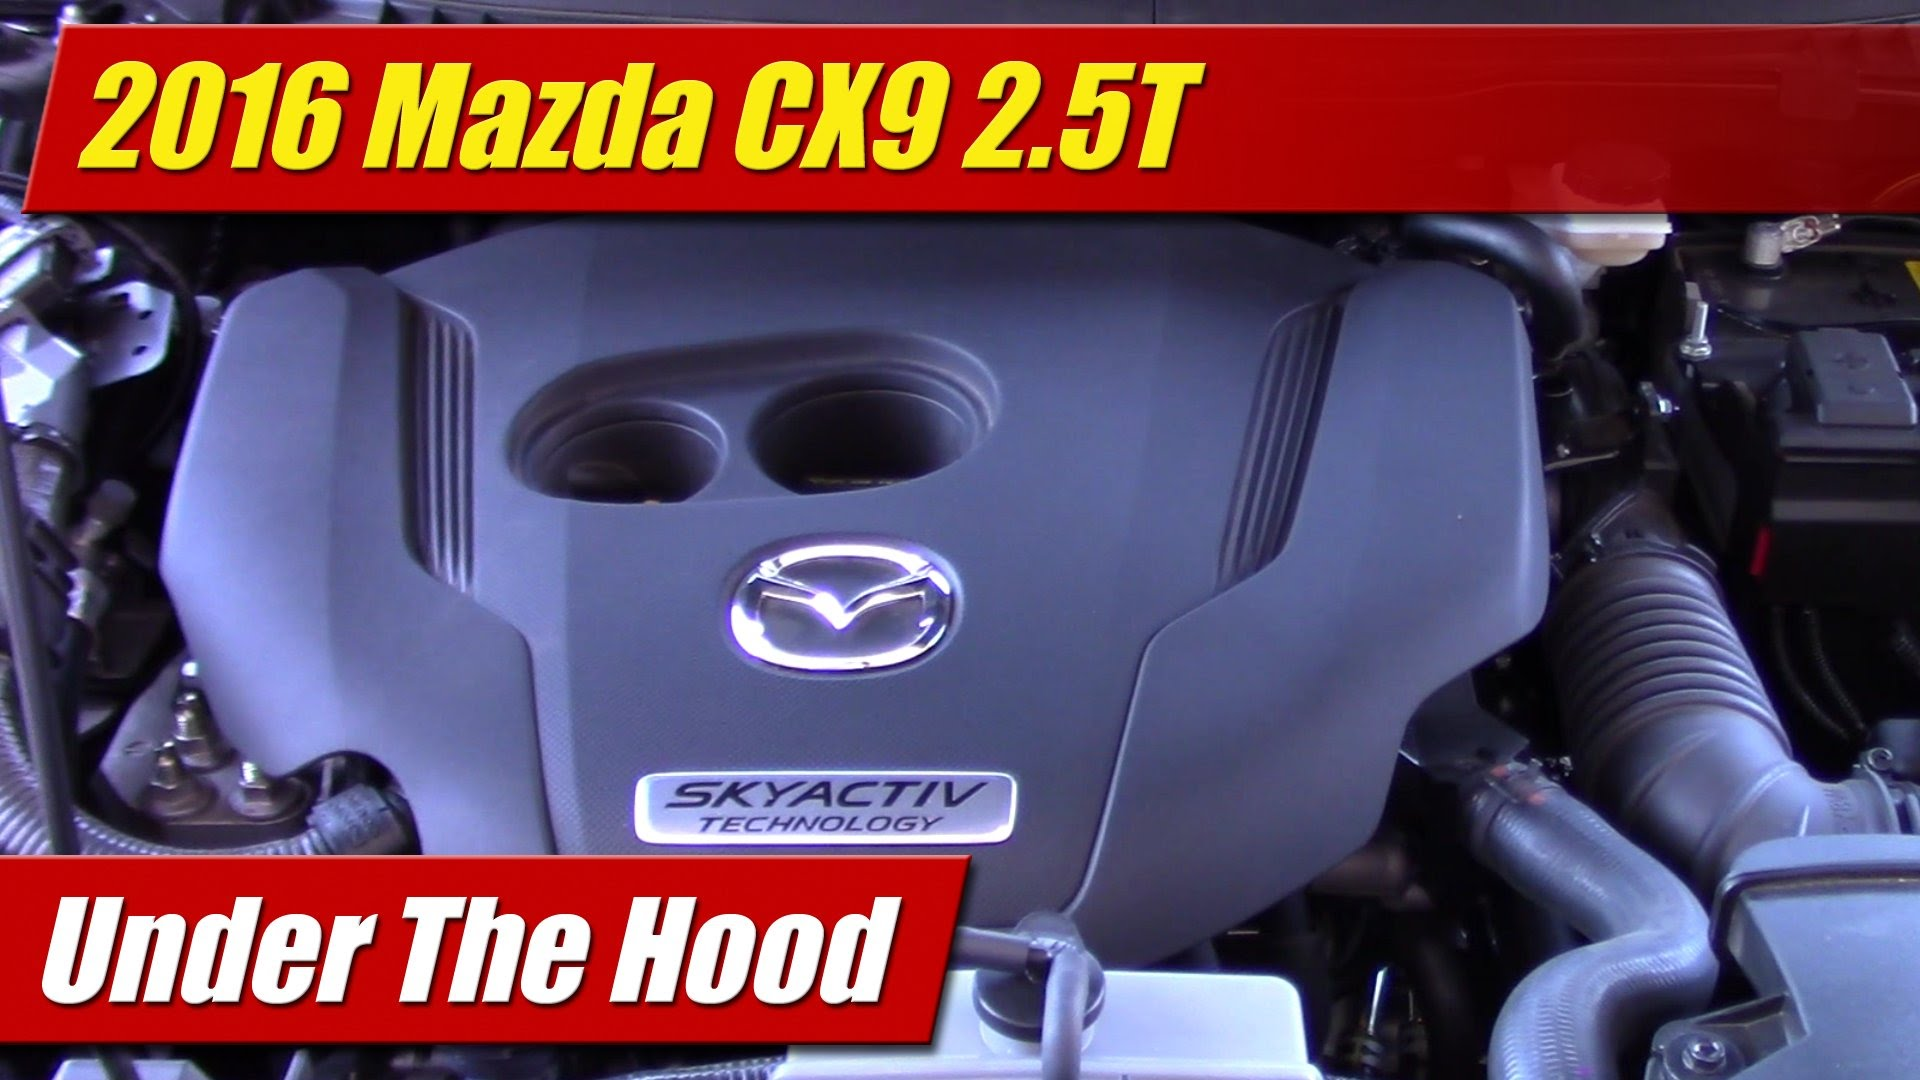 under the hood 2016 mazda cx9 2 5t testdriven tv. Black Bedroom Furniture Sets. Home Design Ideas